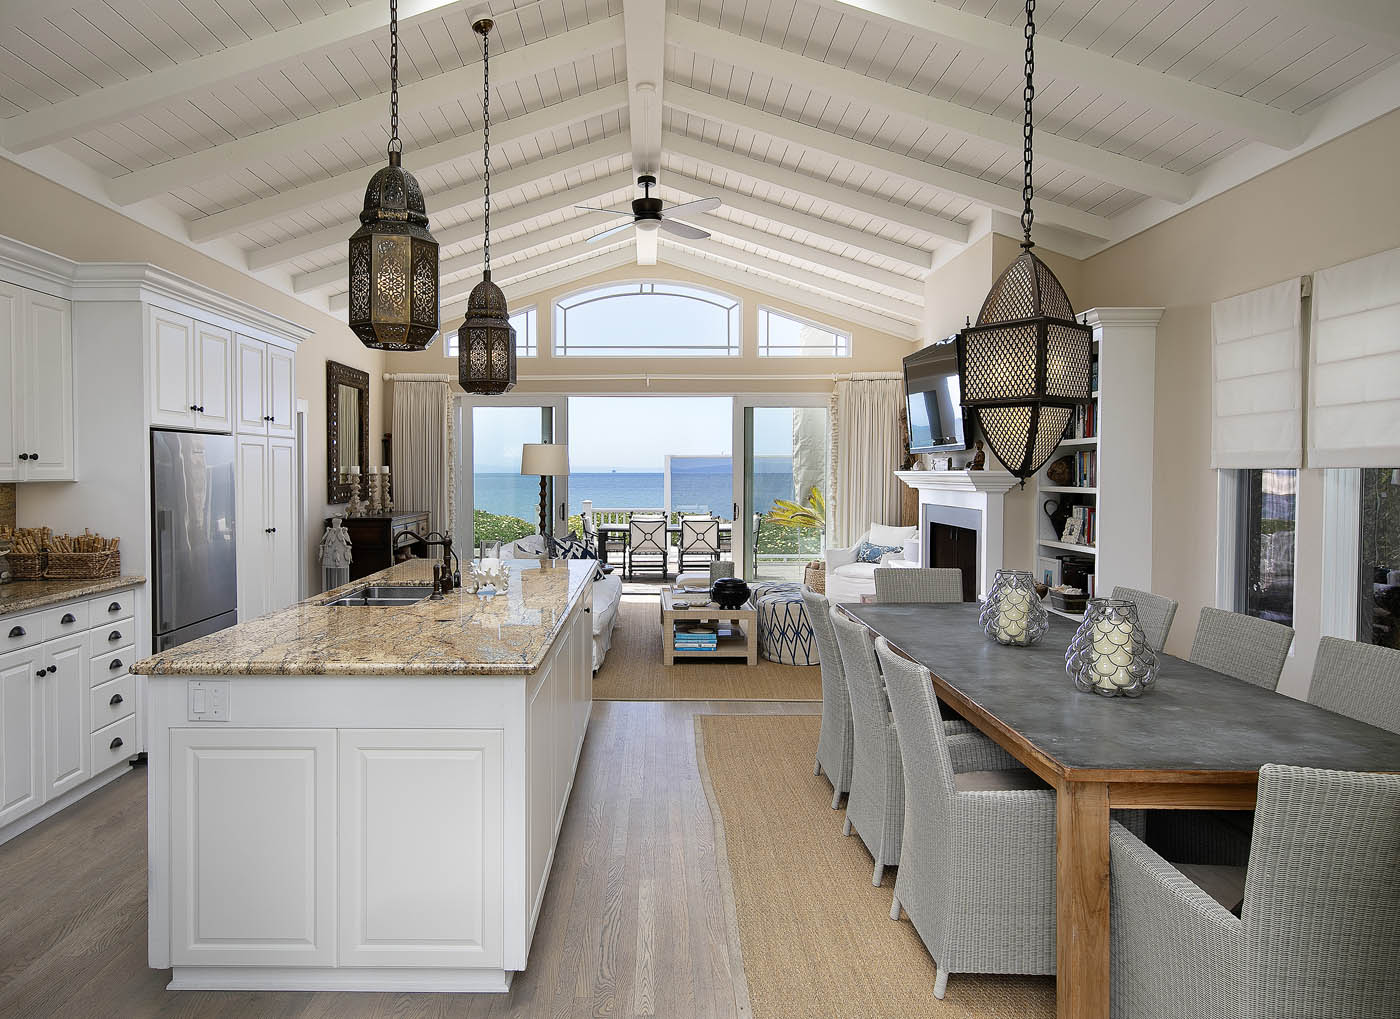 Kitchen and Dining with View.jpg